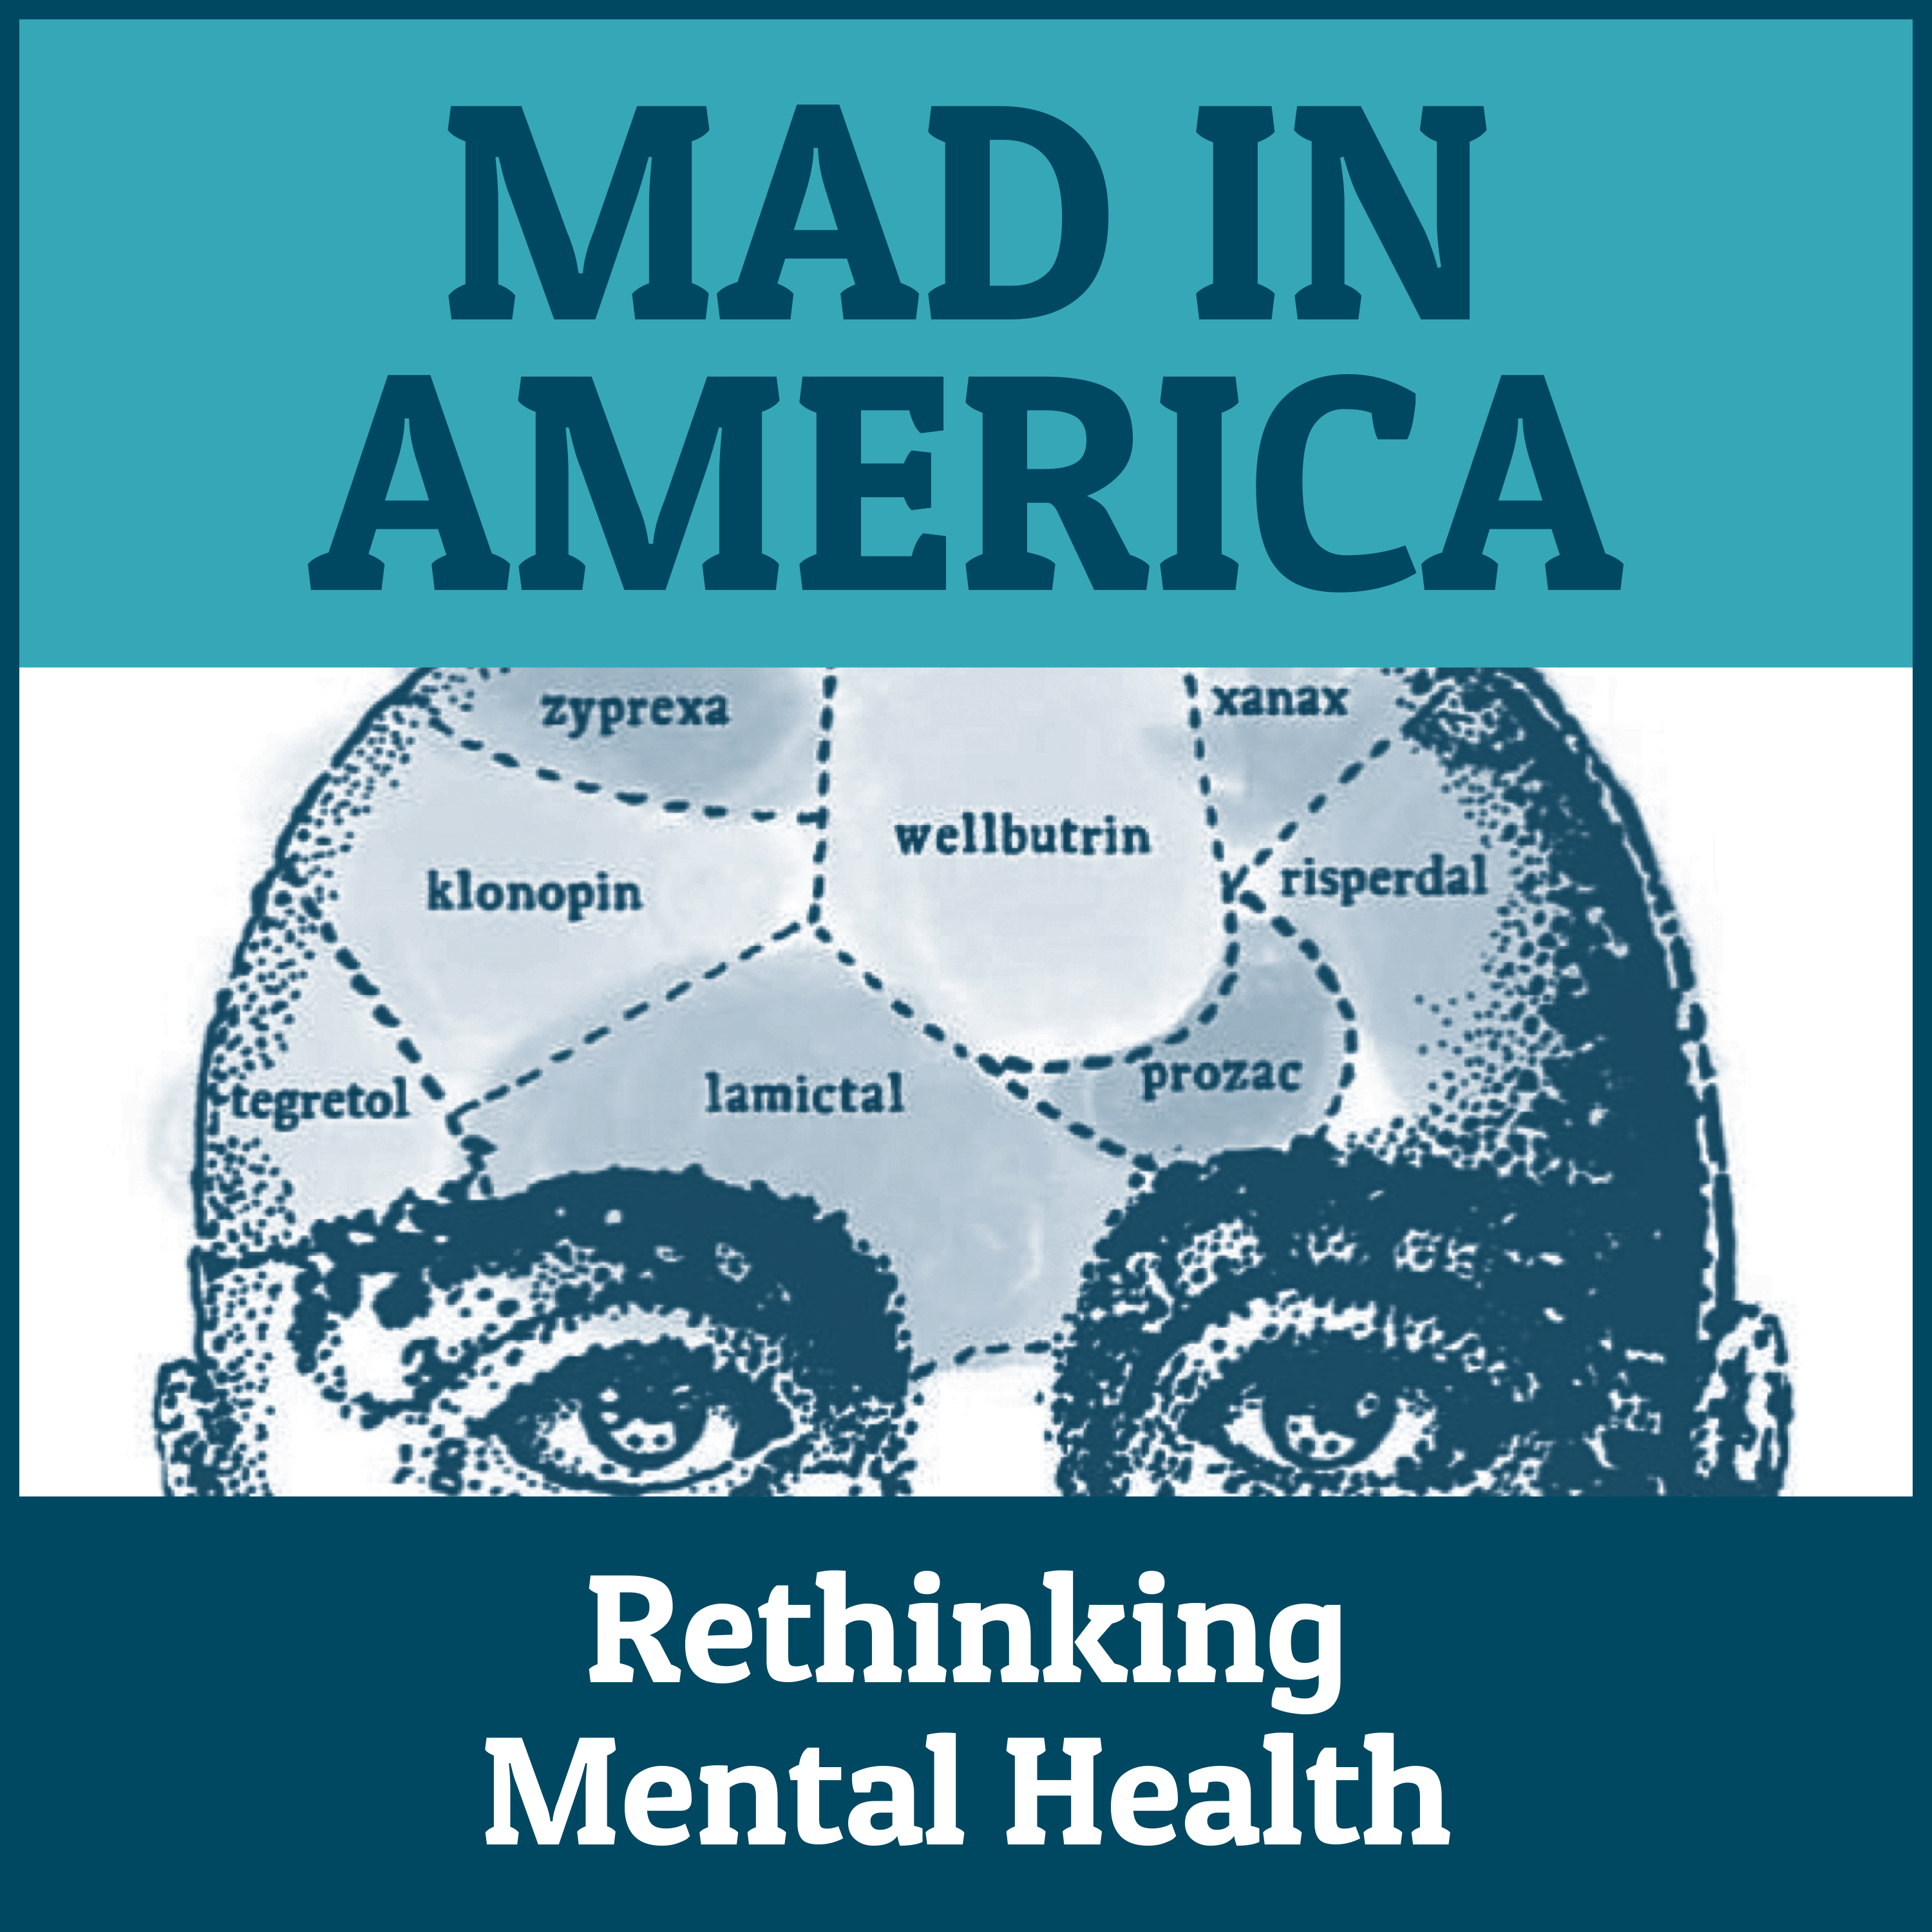 Mad in America: Rethinking Mental Health - Michelle Funk - WHO and the Sea Change in Mental Health